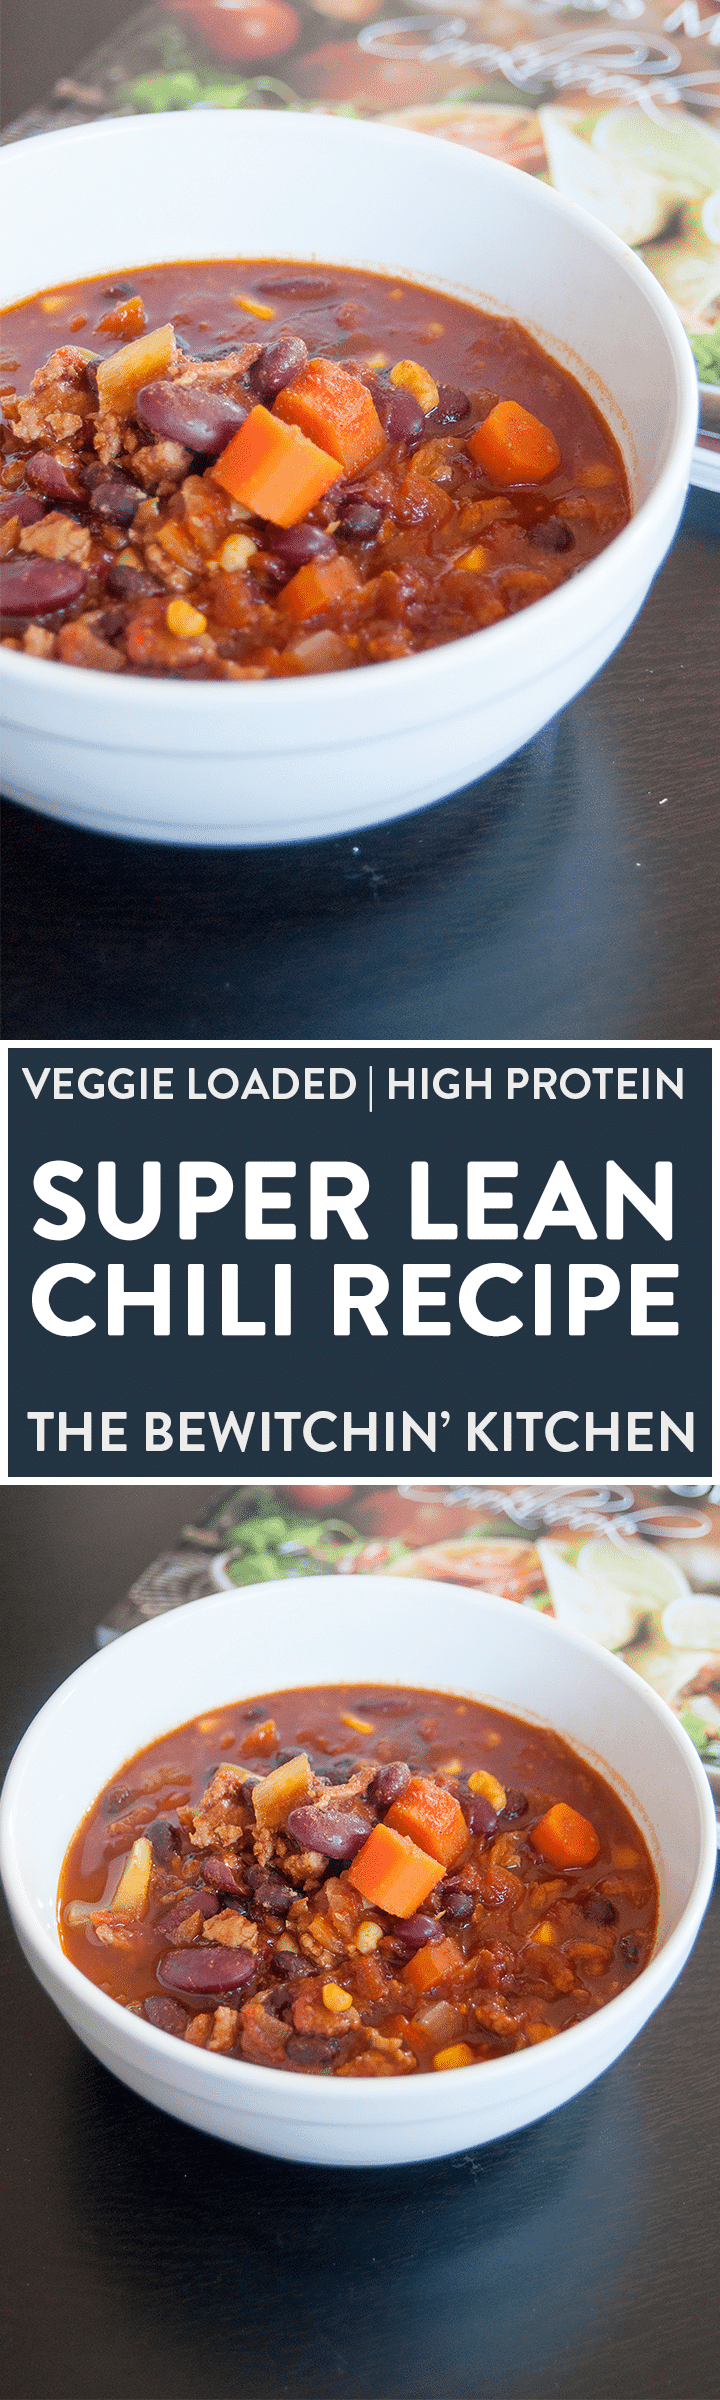 BEST CHILI EVER - Super lean and healthy chili recipe from Teena's Fitness. Ground chicken or ground turkey works well with this healthy recipe.